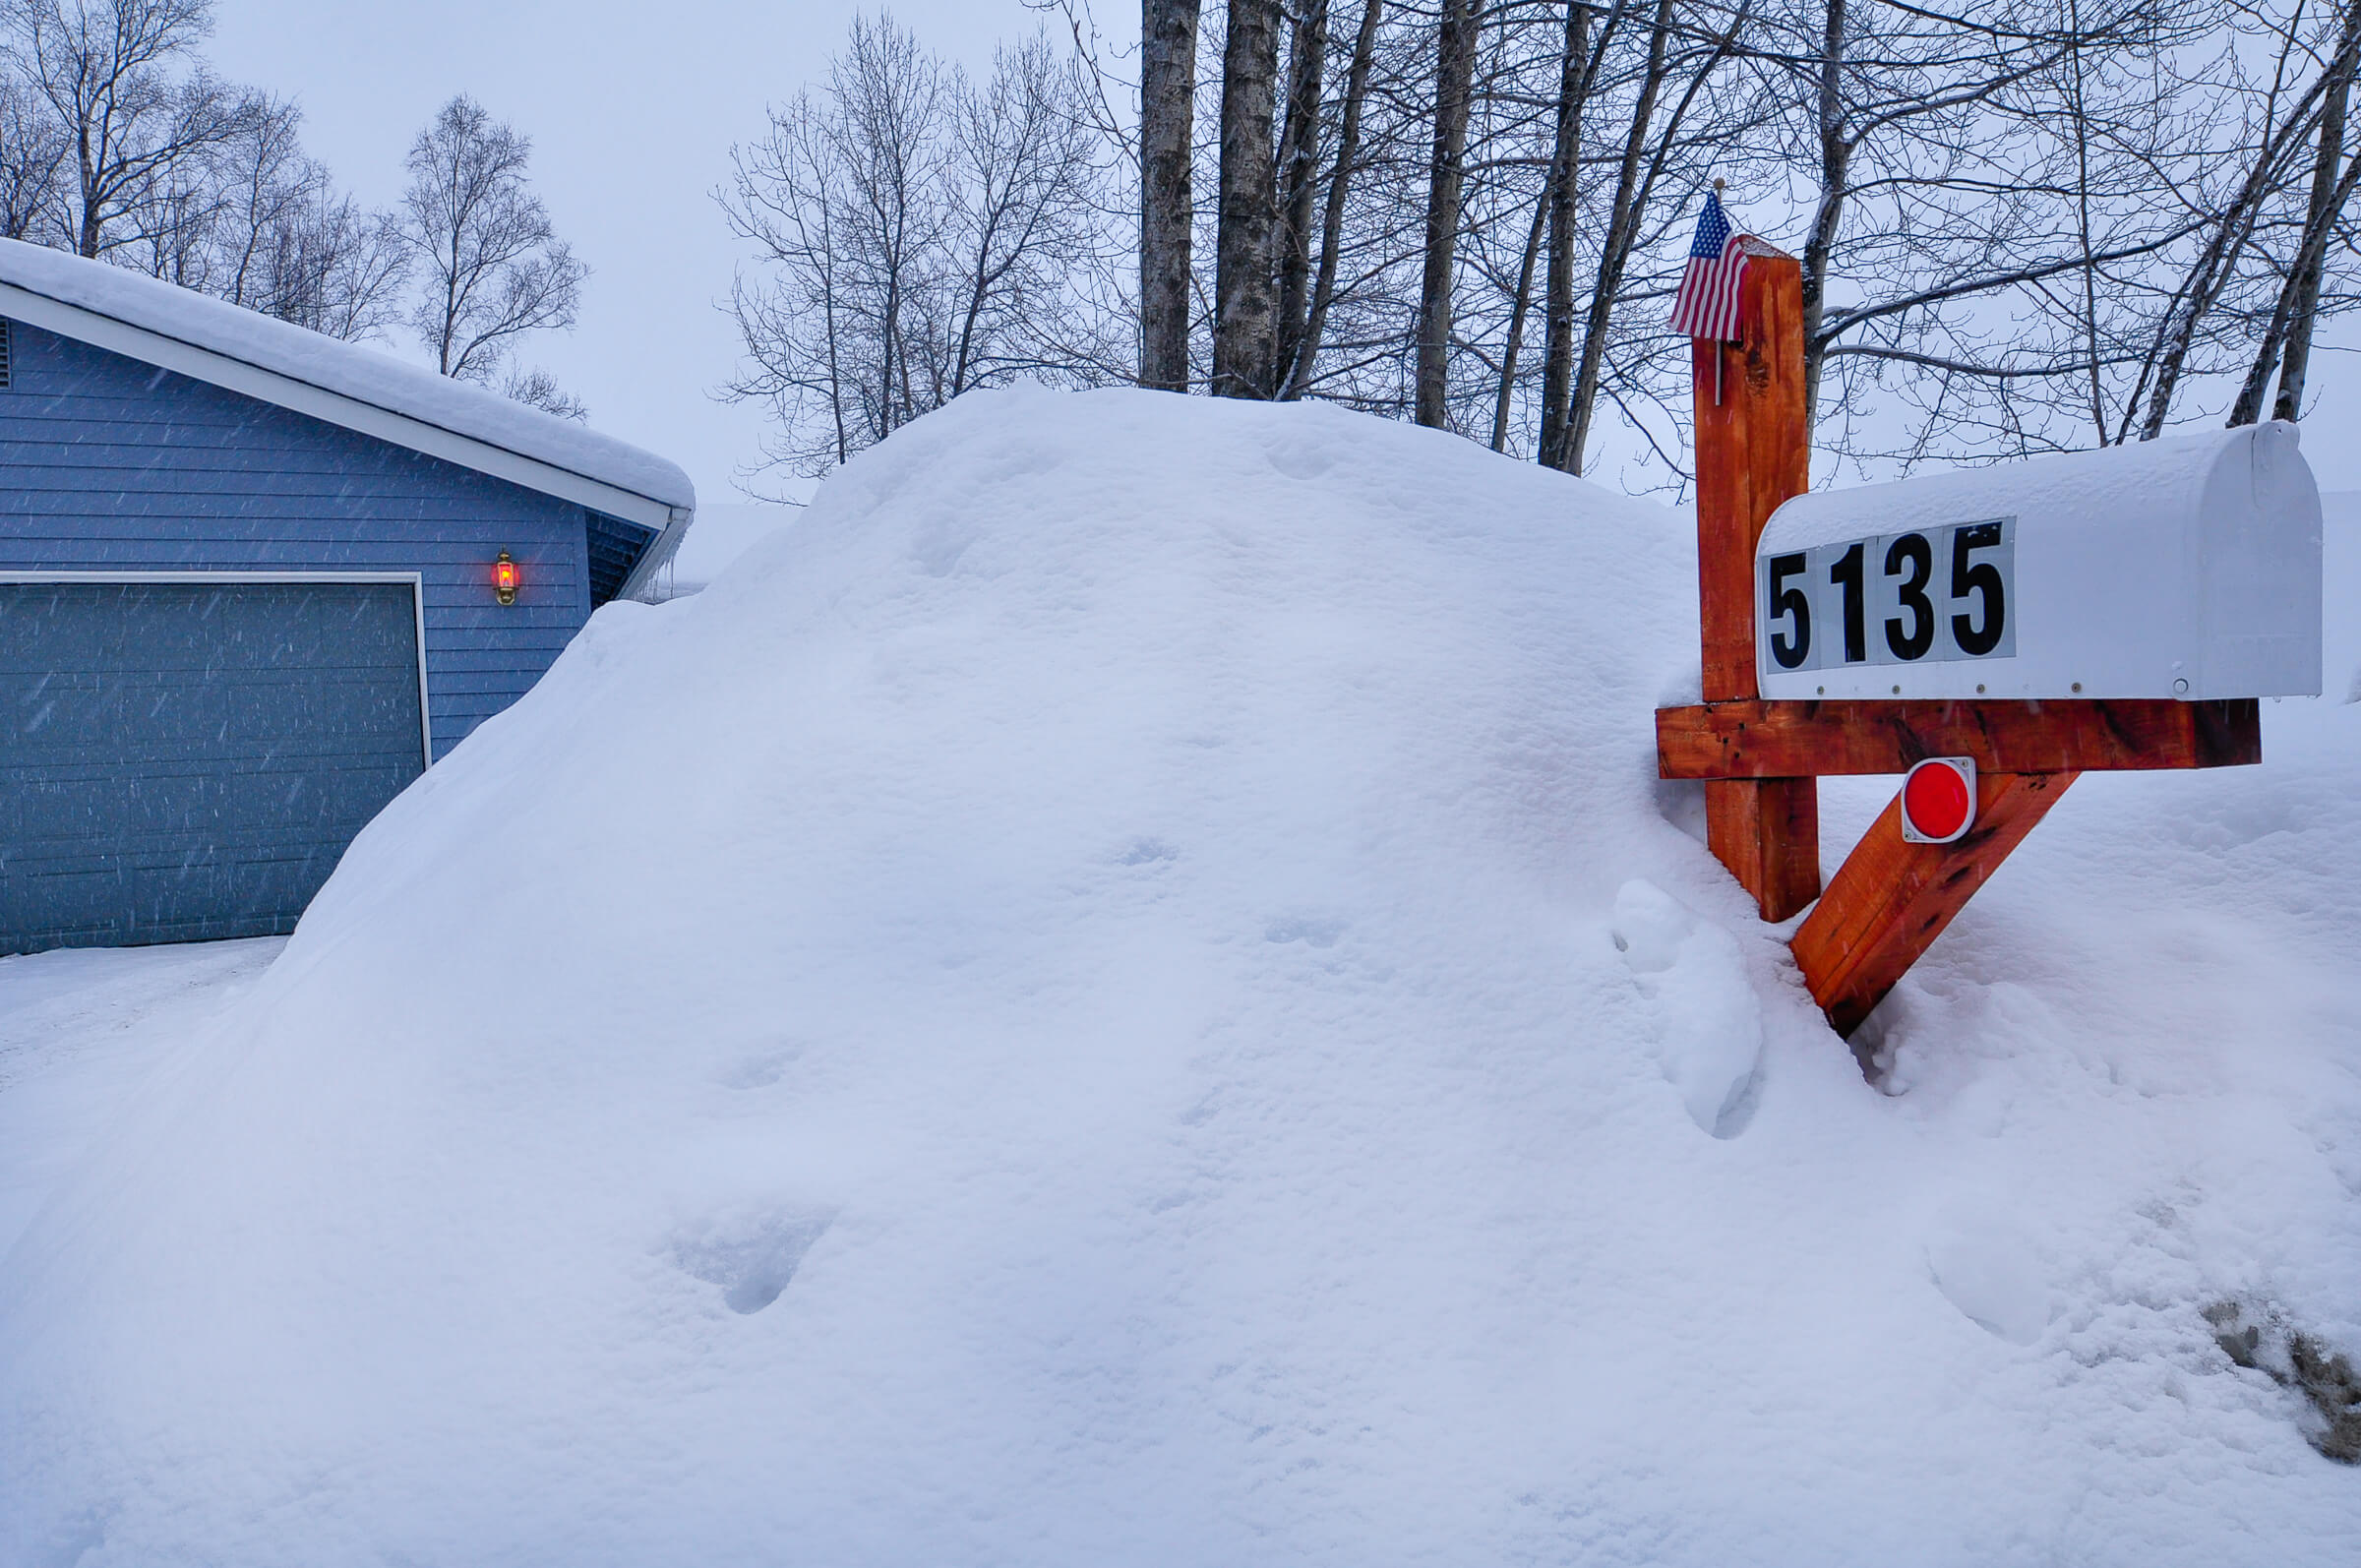 Don't get snowed in this winter